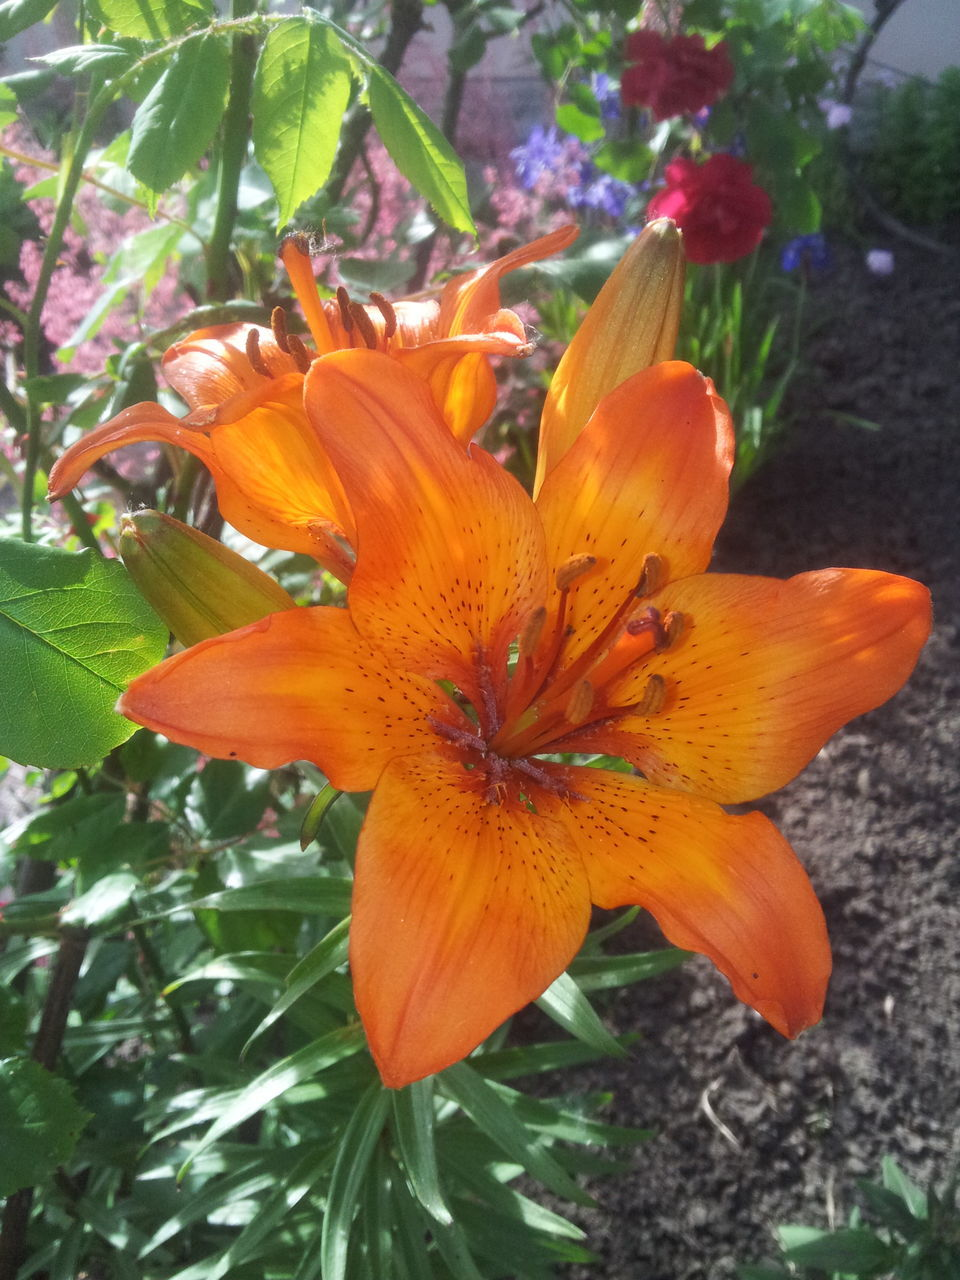 flower, growth, petal, fragility, beauty in nature, flower head, freshness, nature, orange color, plant, no people, outdoors, day, day lily, blooming, close-up